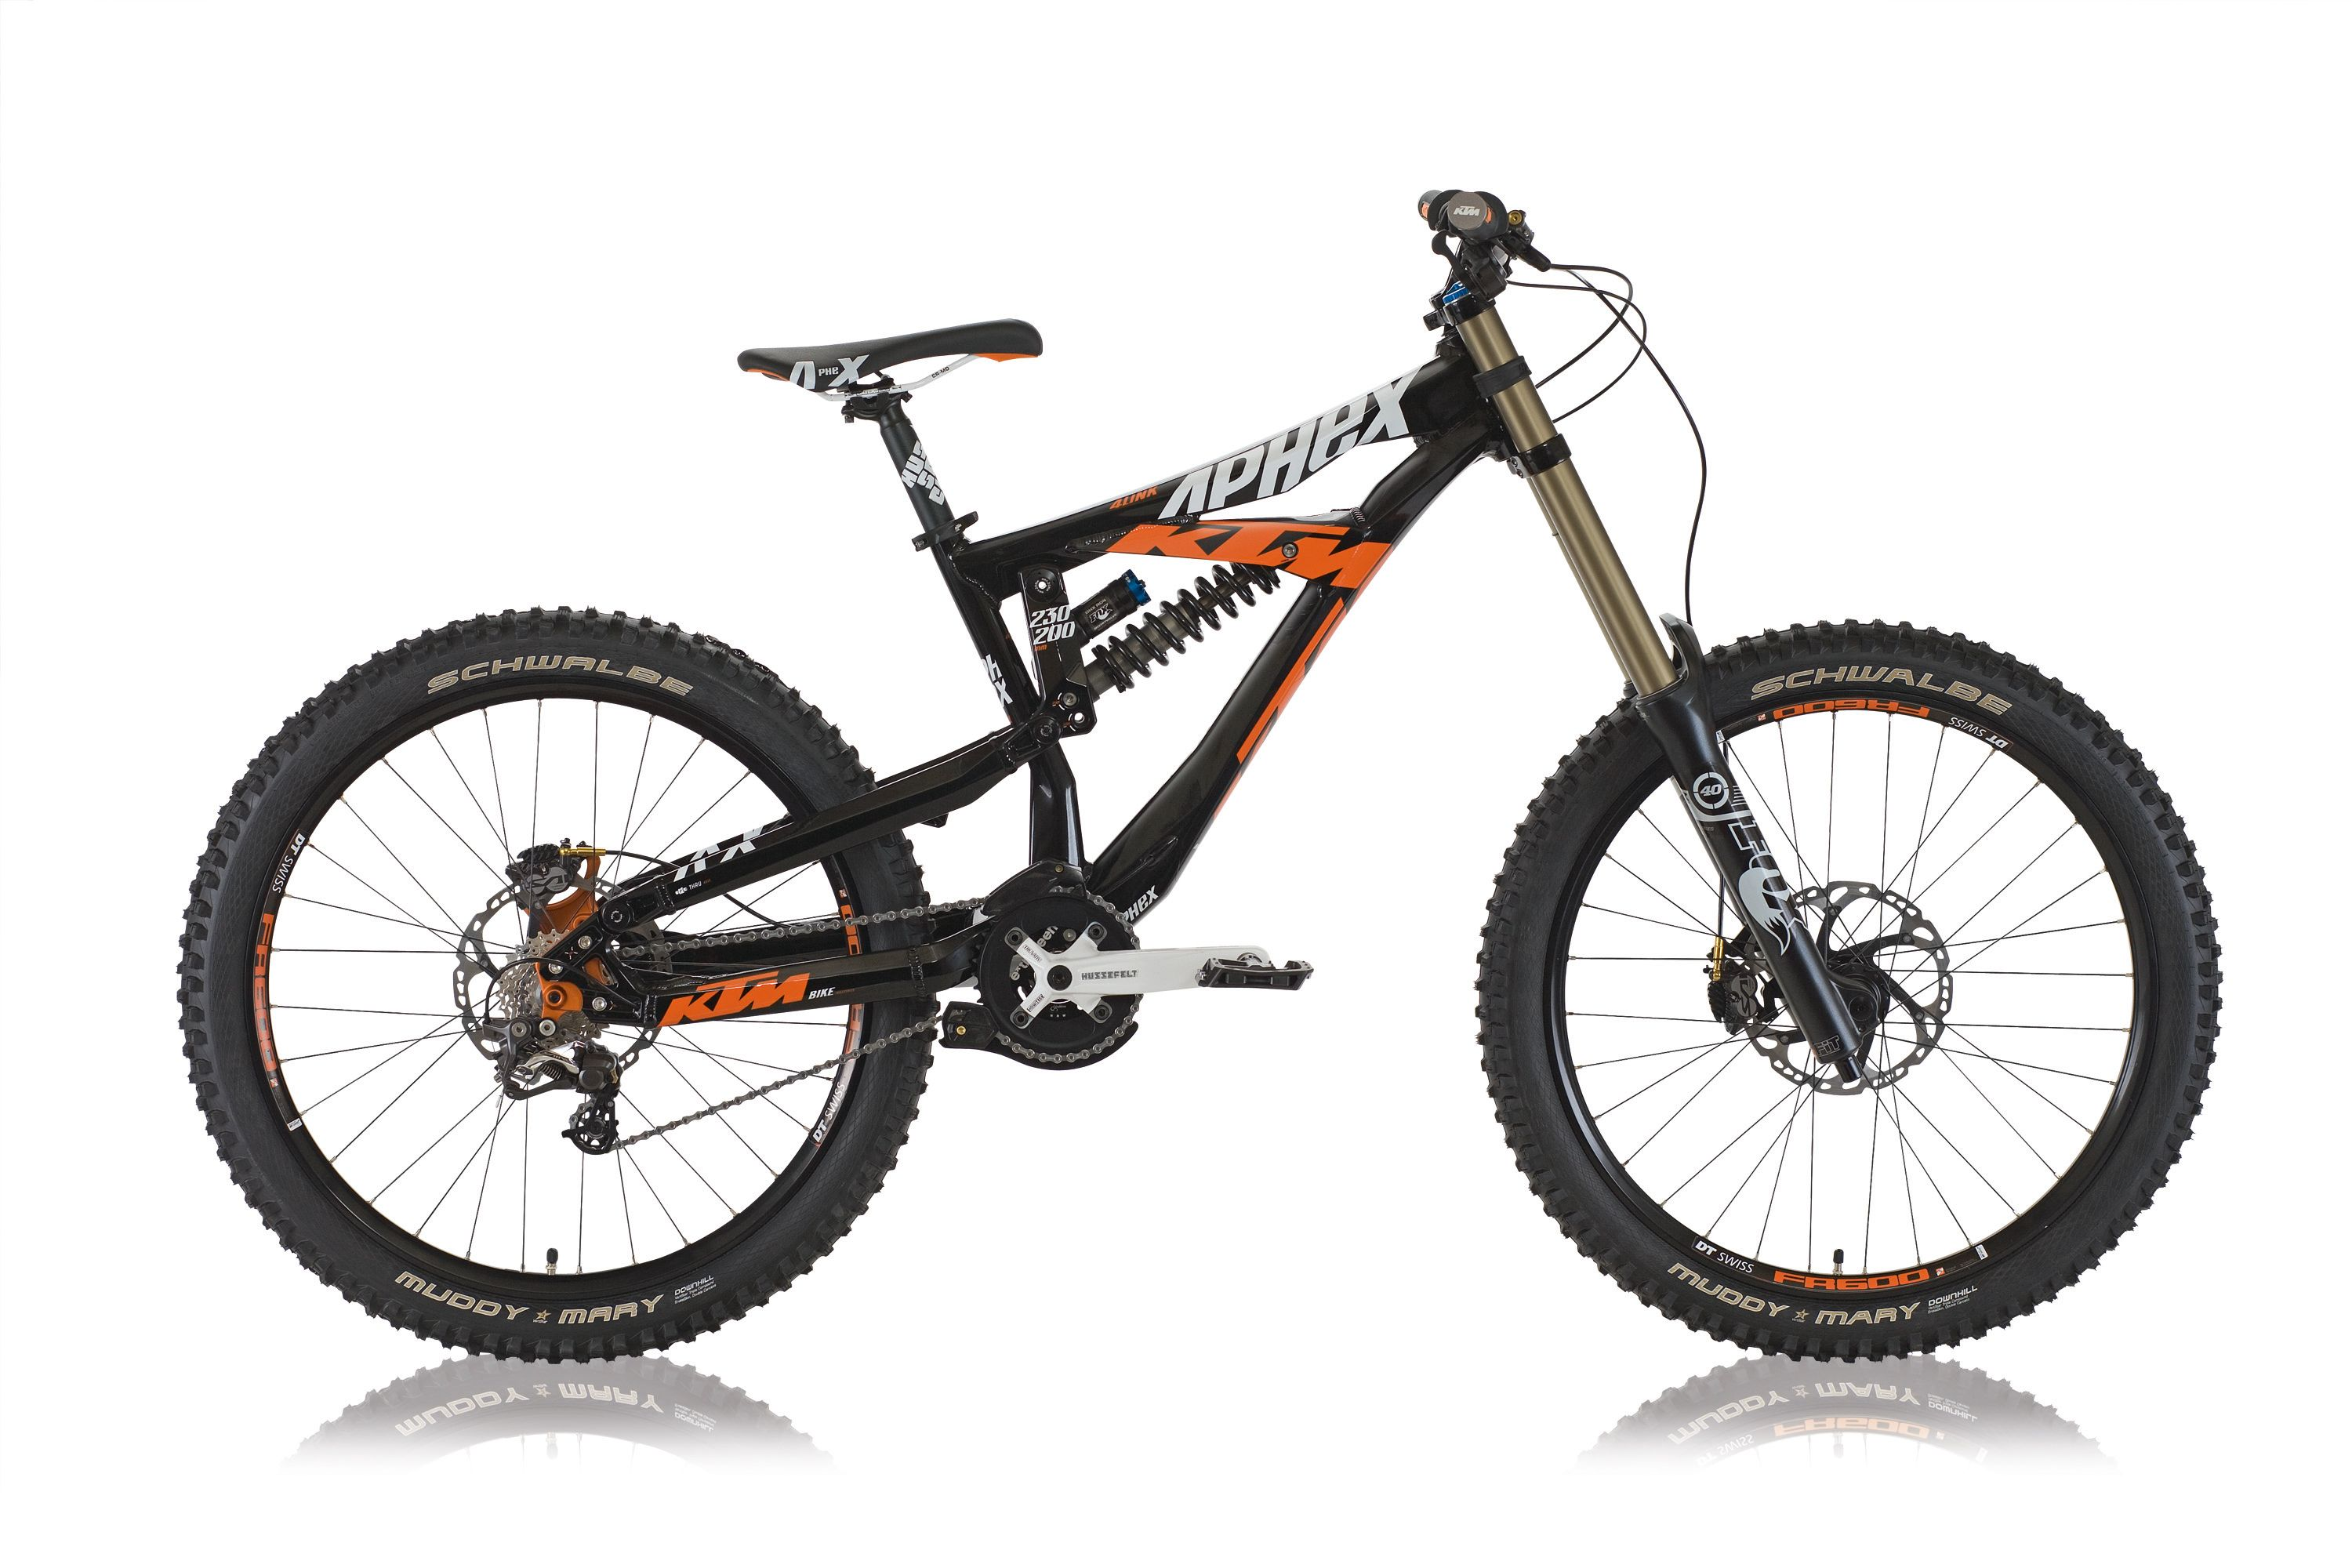 ktm aphex 2013 mountain bike 3500 ktm bikes pinterest. Black Bedroom Furniture Sets. Home Design Ideas